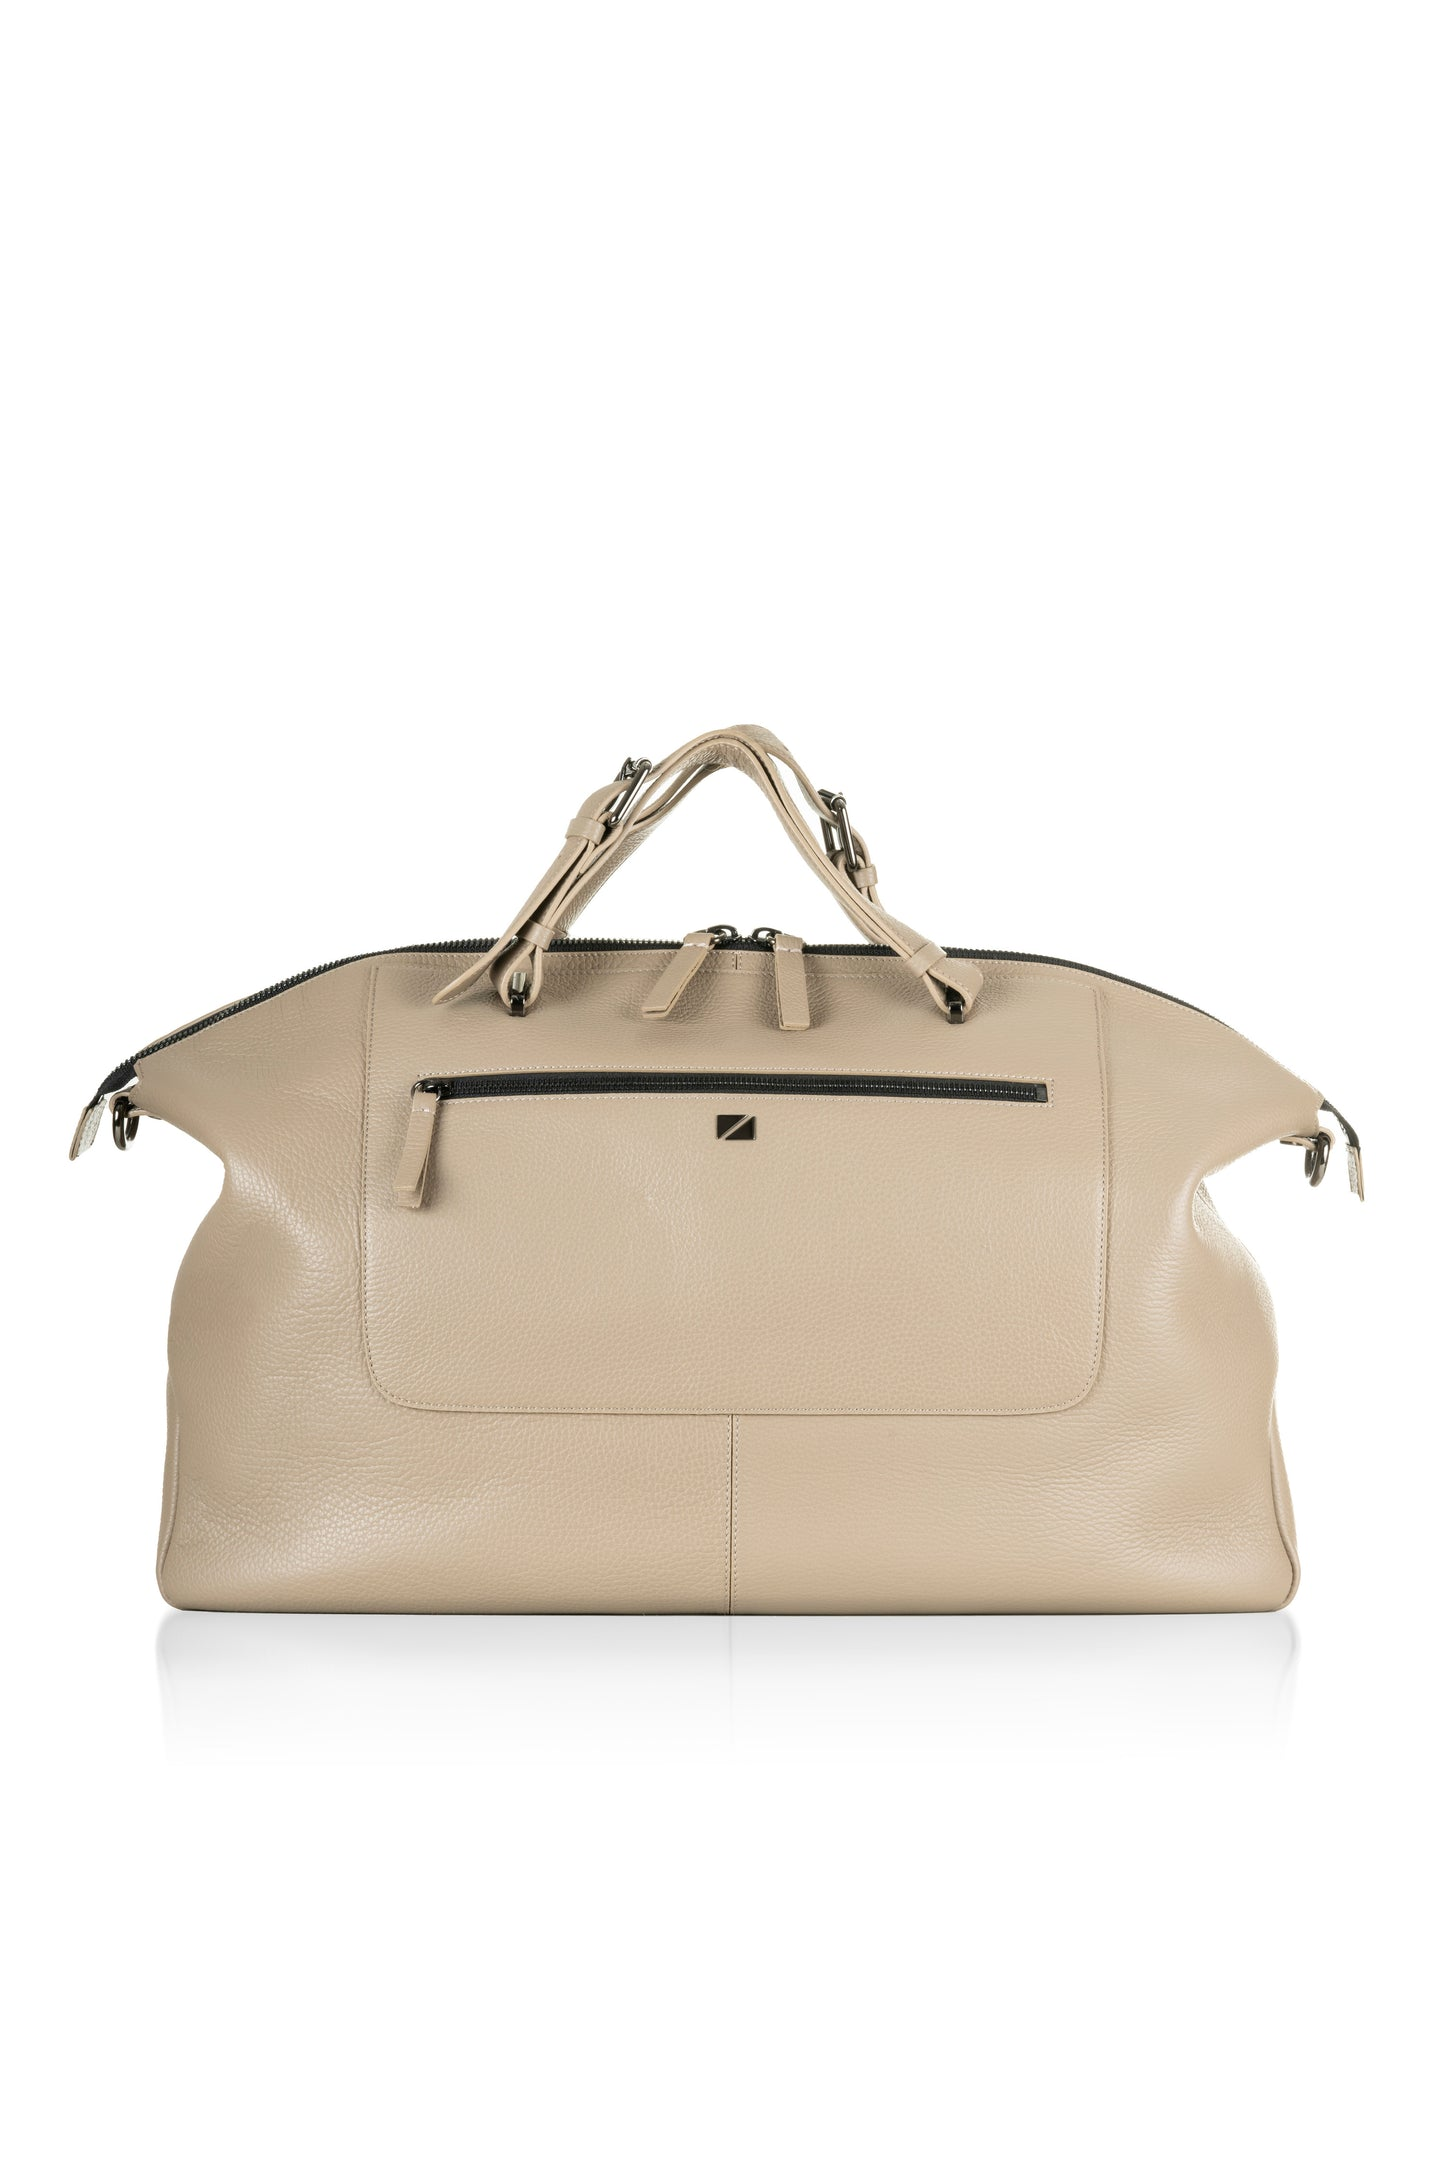 DUFFLE BAG - col. Crete - 20% OFF